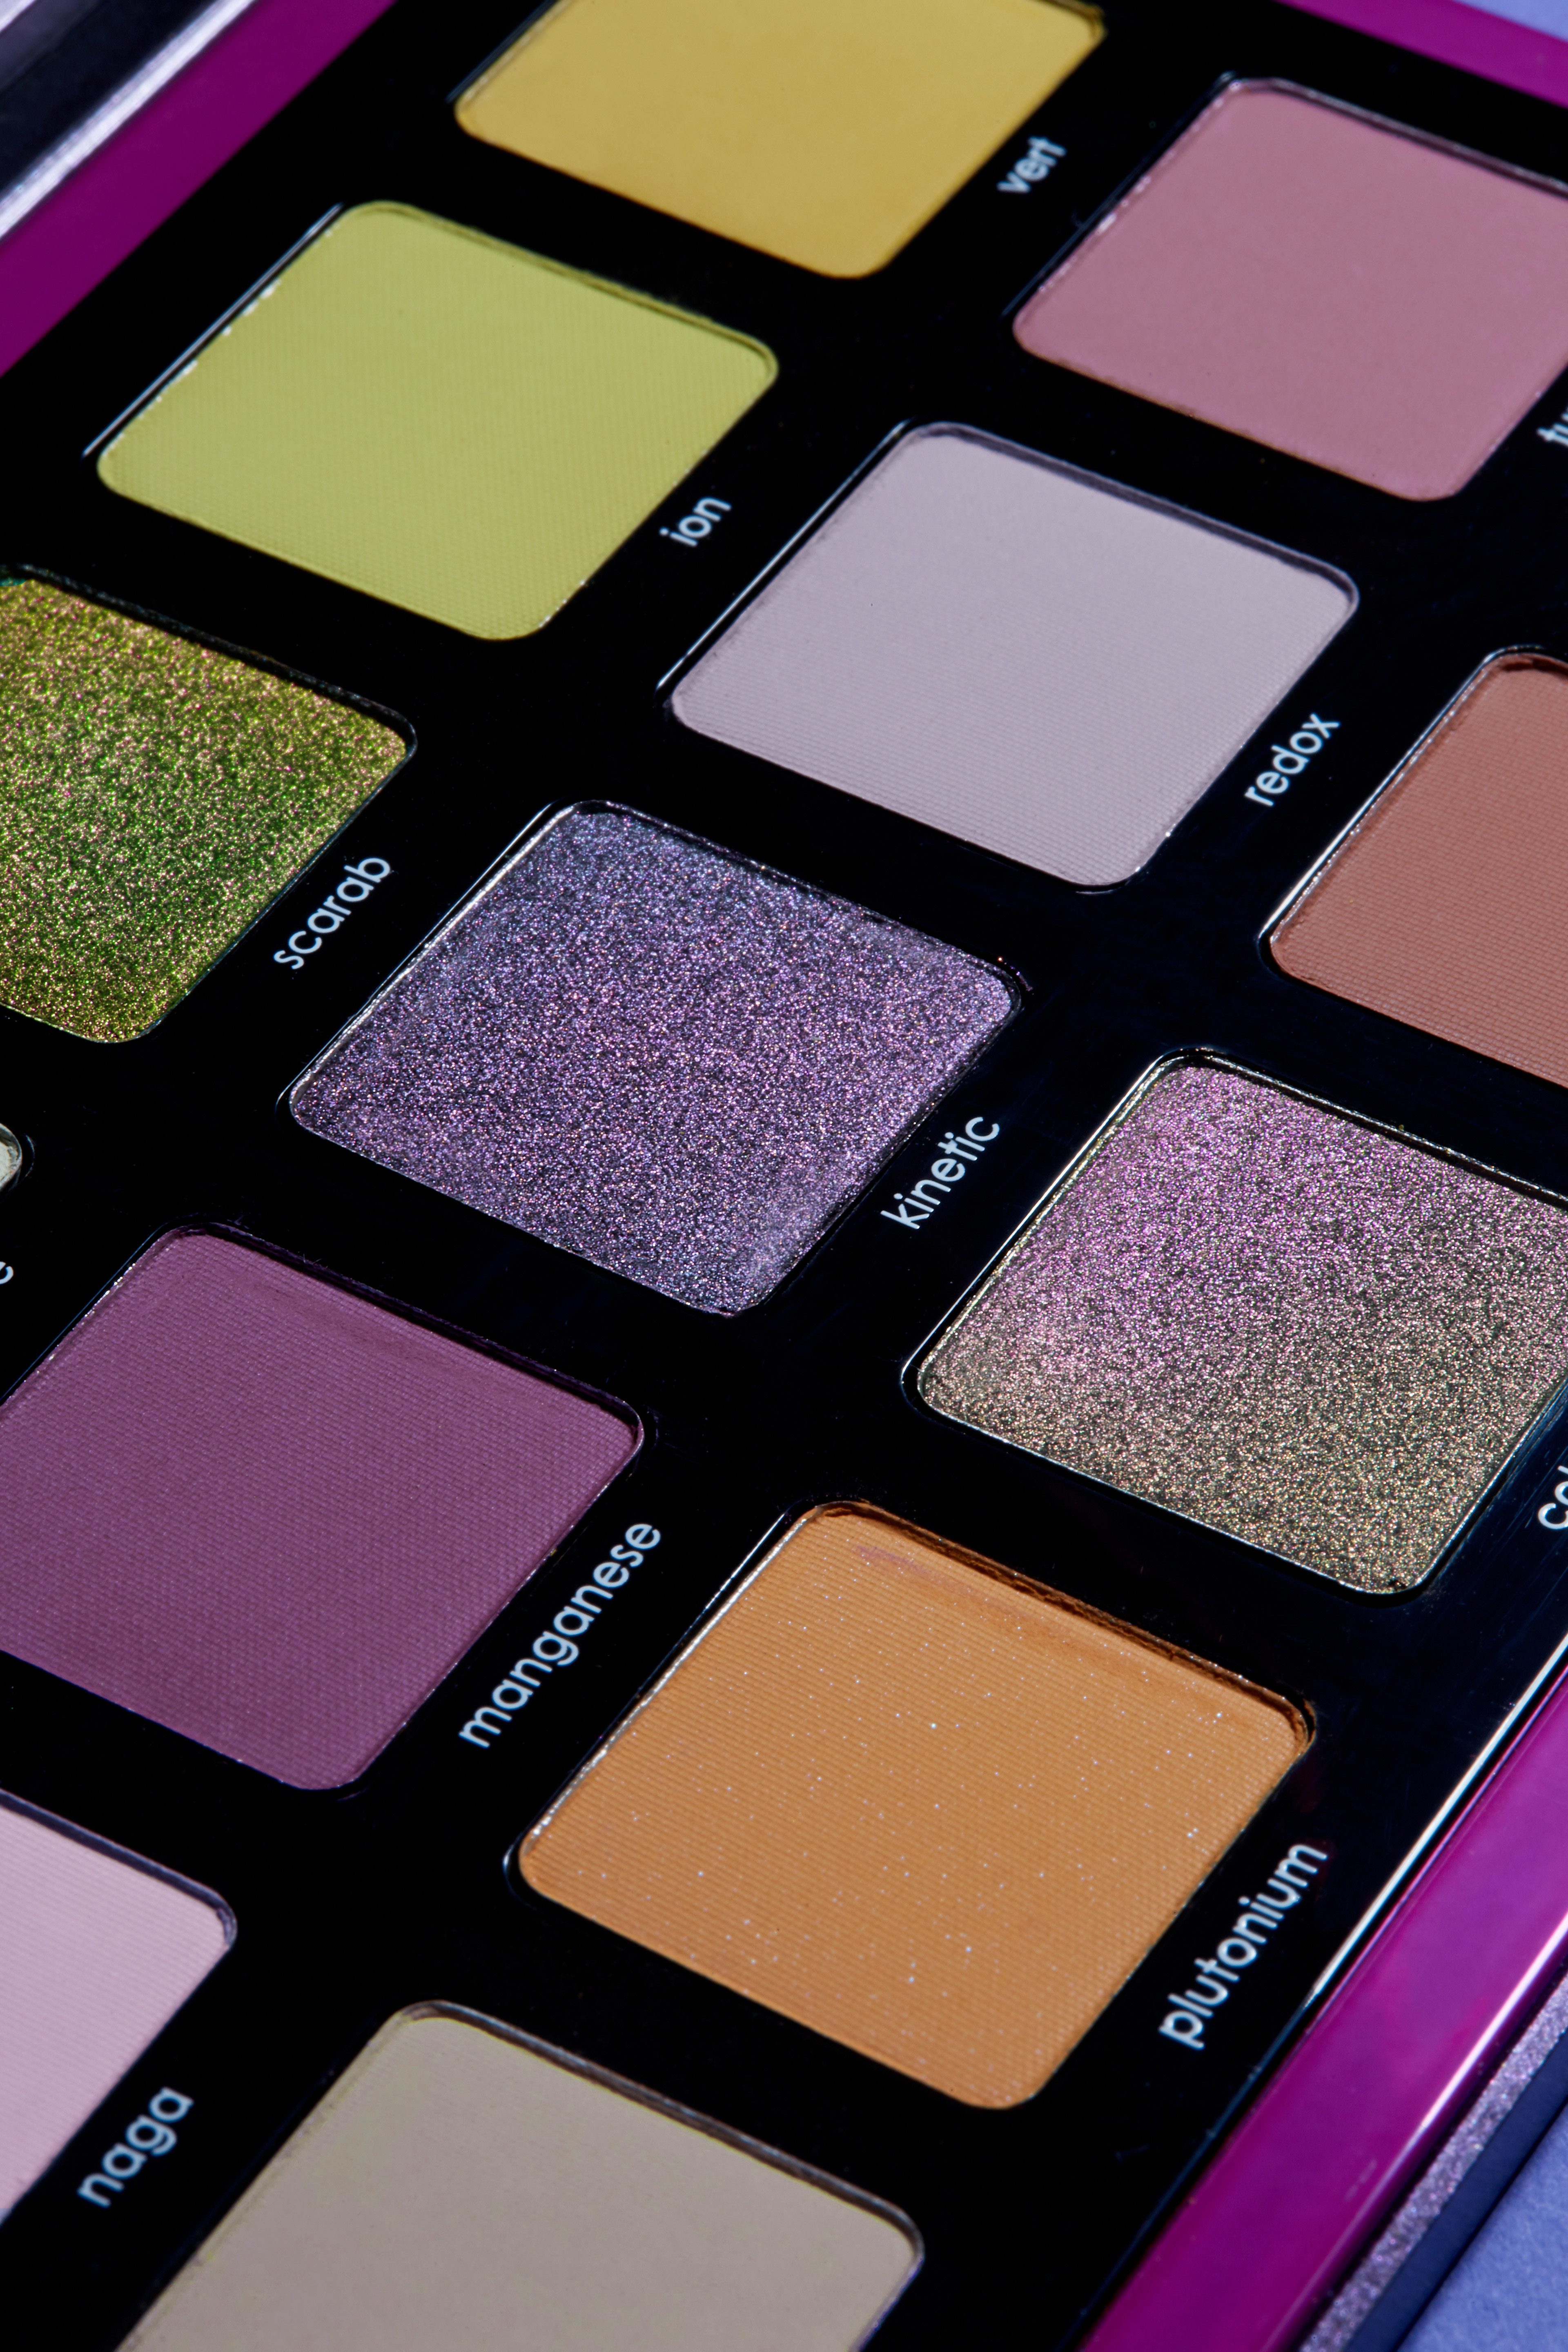 Alternate product image for Triochrome Palette shown with the description.